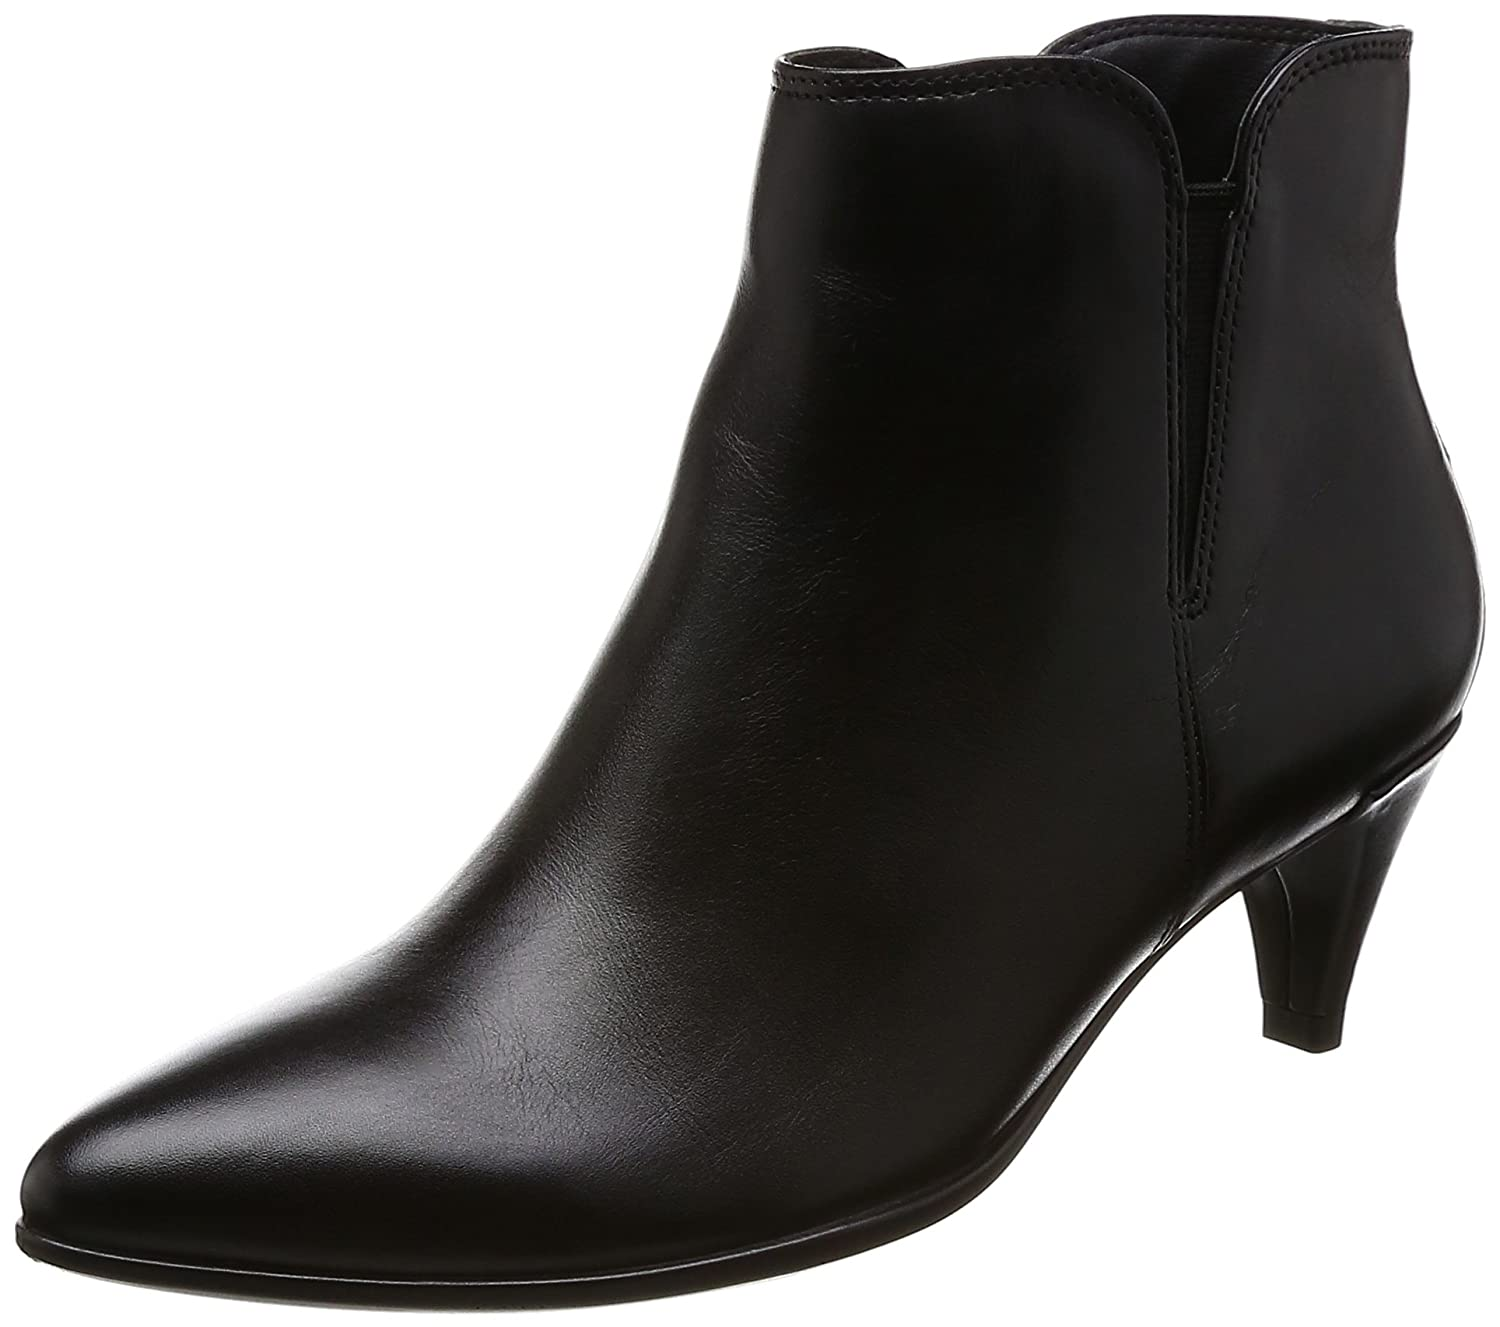 ECCO Women's Women's Shape 45 Sleek Ankle Bootie B01MSB0II6 35 EU / 4-4.5 US|Black